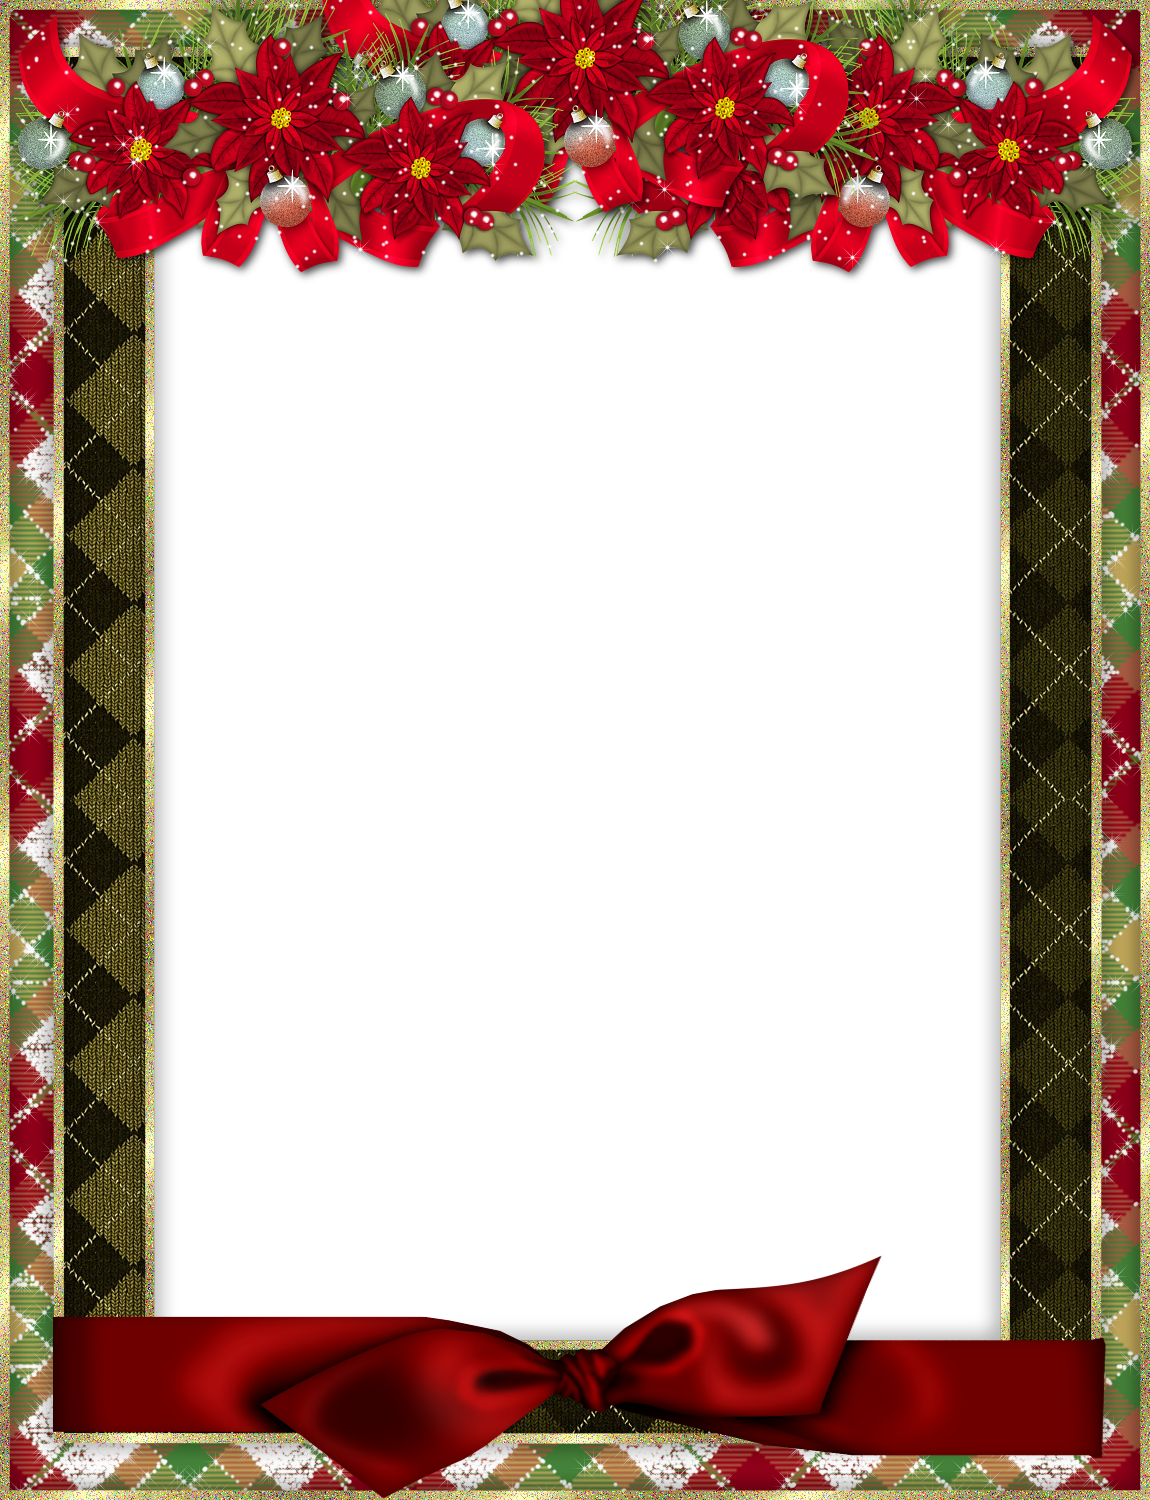 poinsettias clipart bow